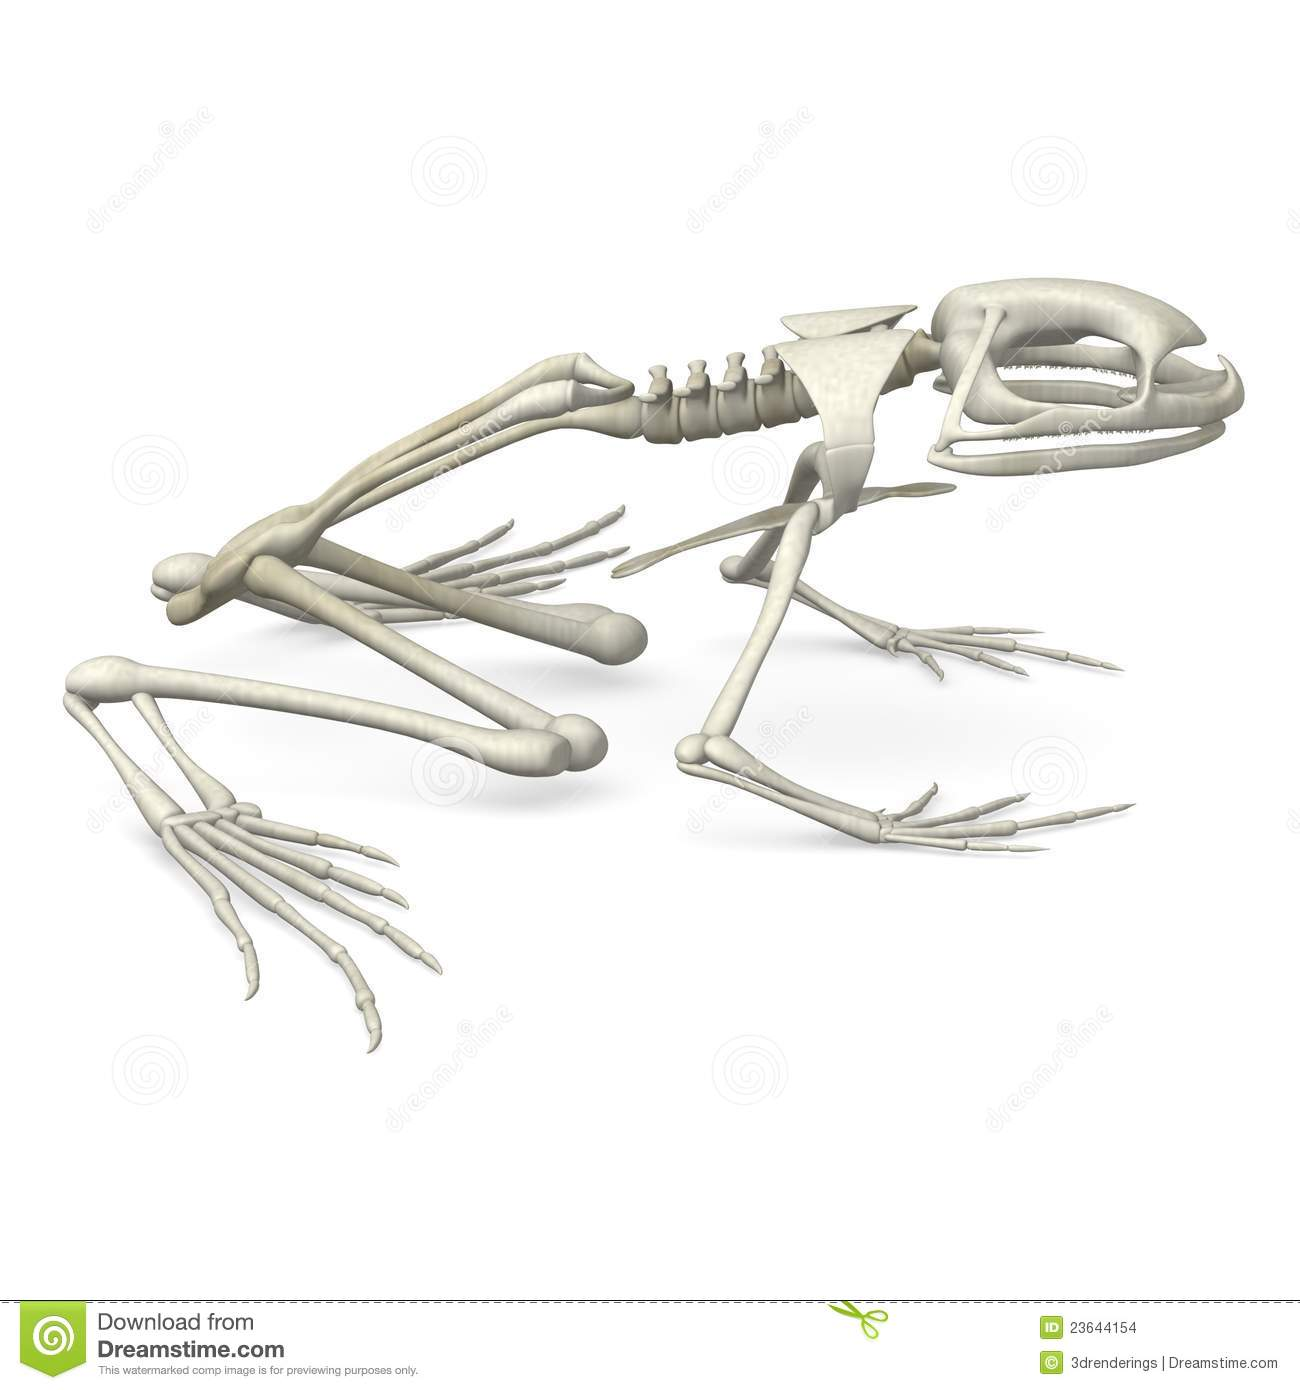 Frog skeleton from side stock illustration. Illustration of ...